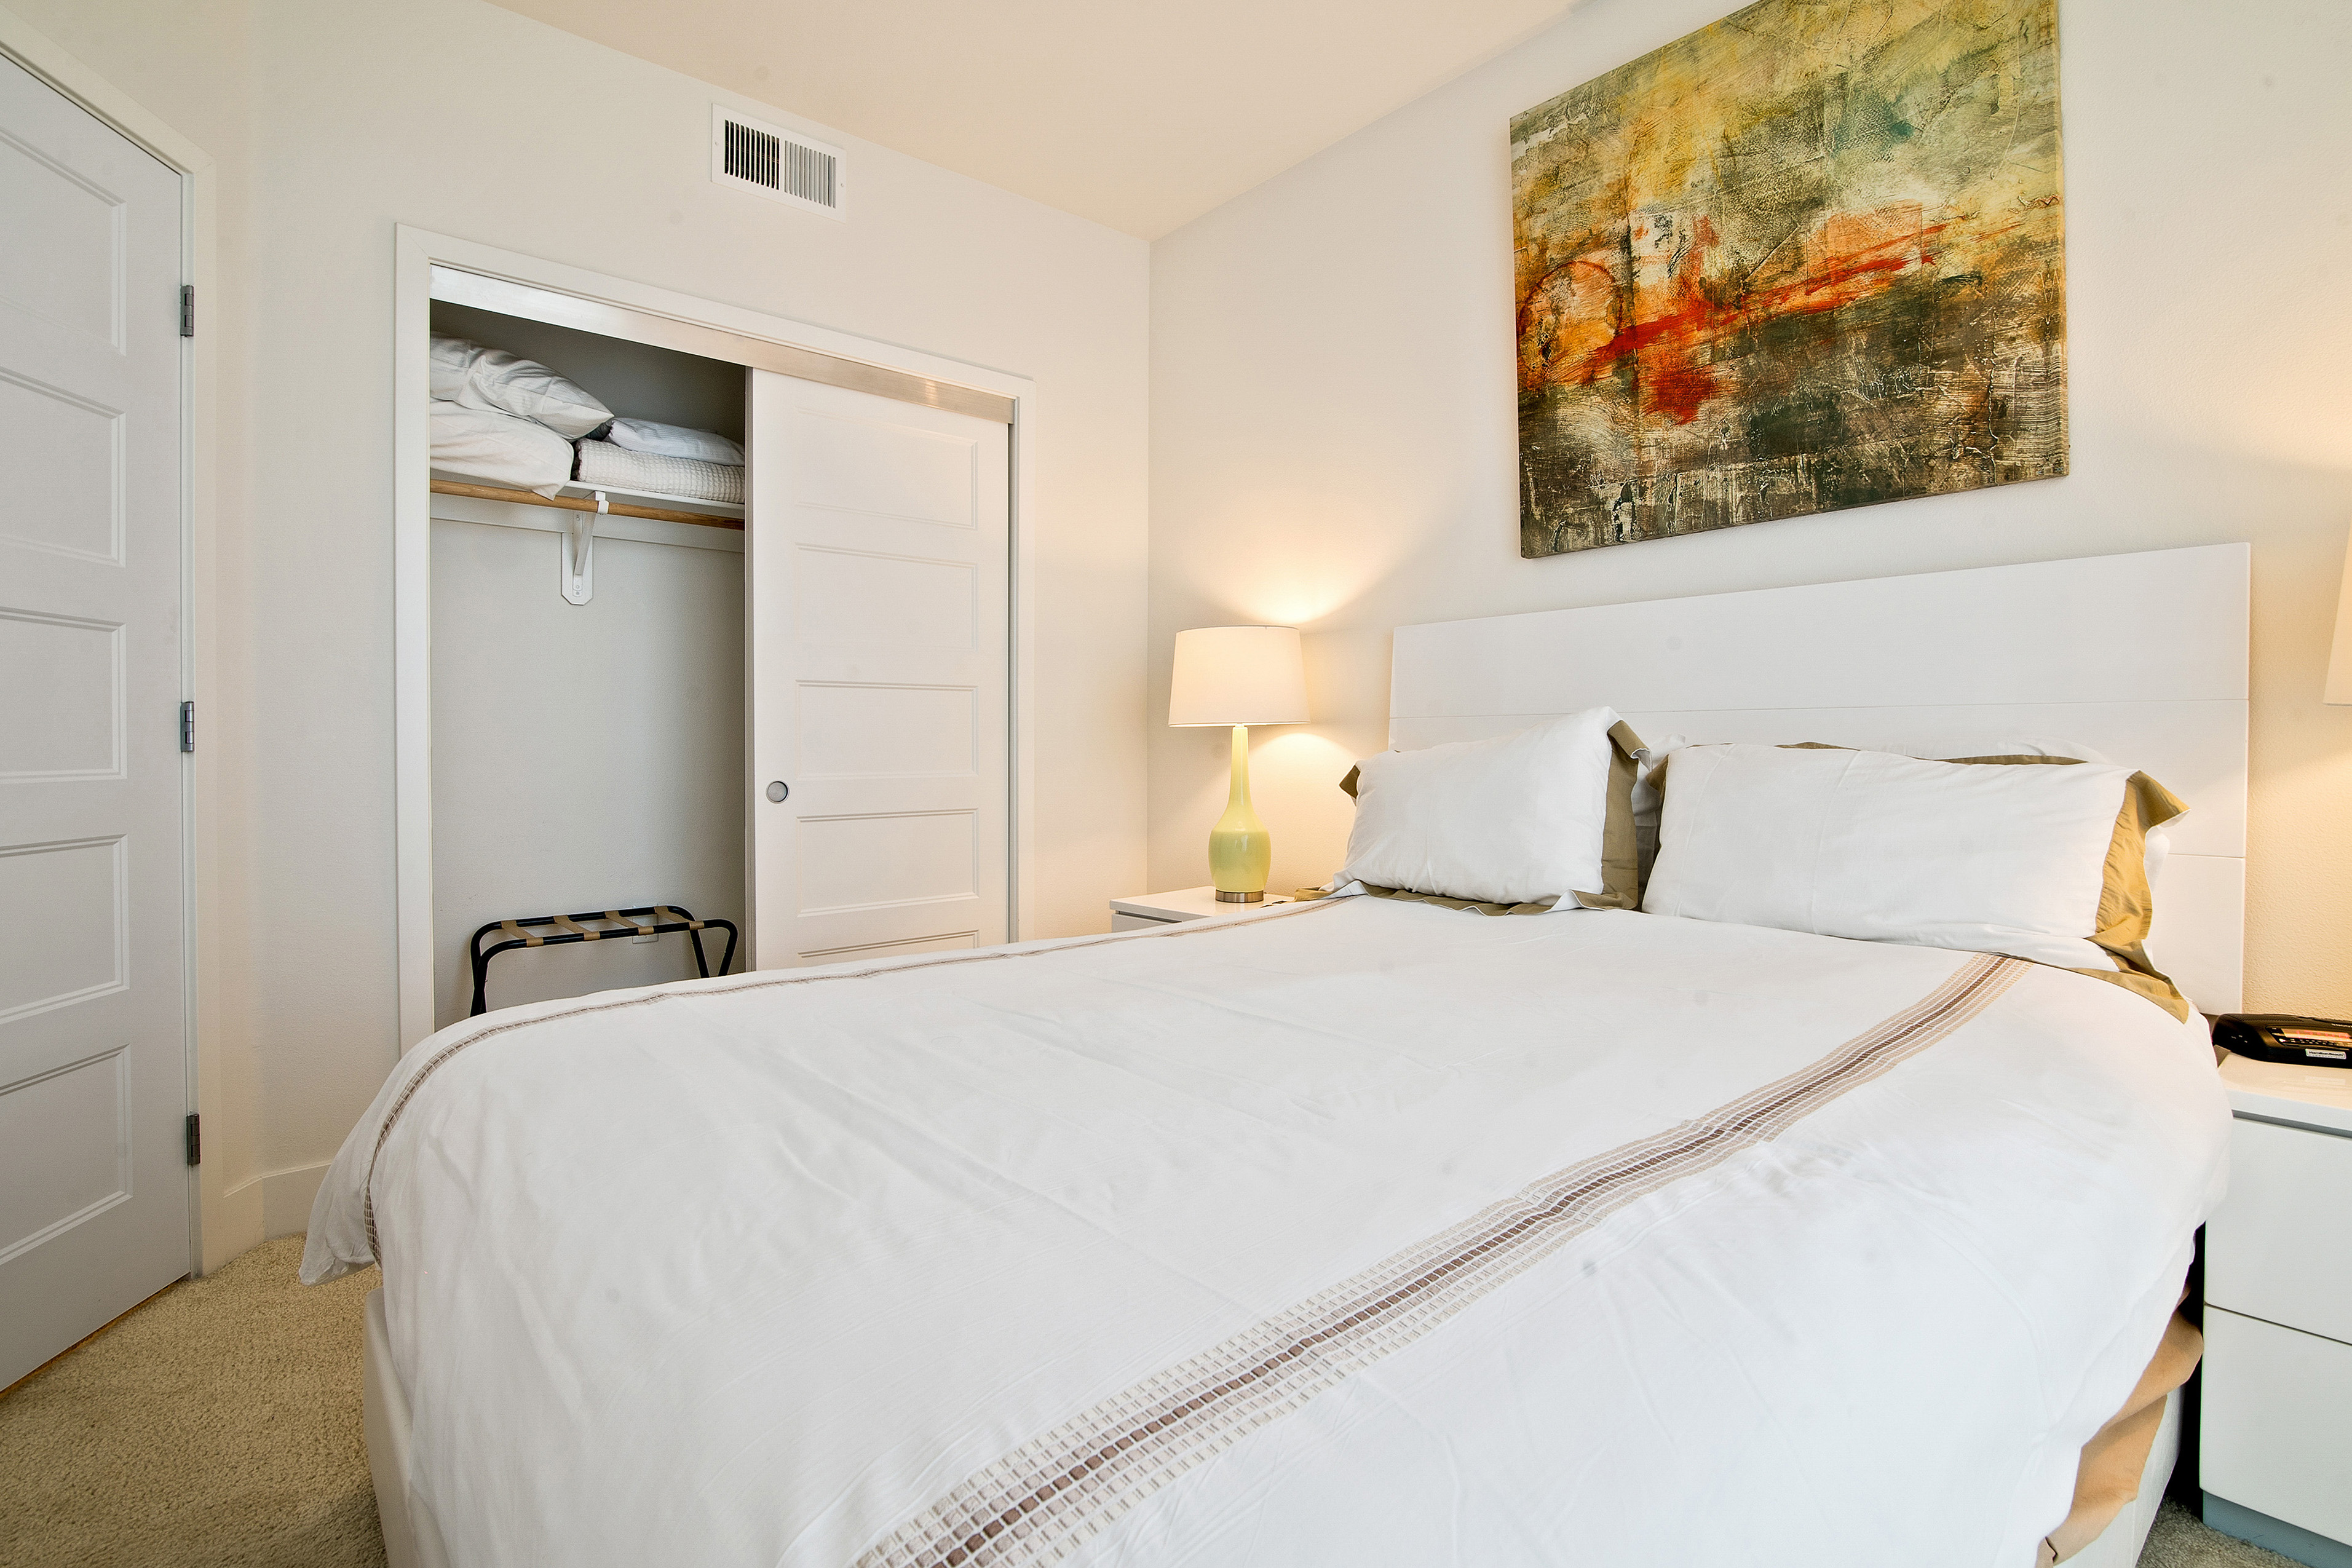 image 9 furnished 1 bedroom Apartment for rent in Berkeley, Alameda County